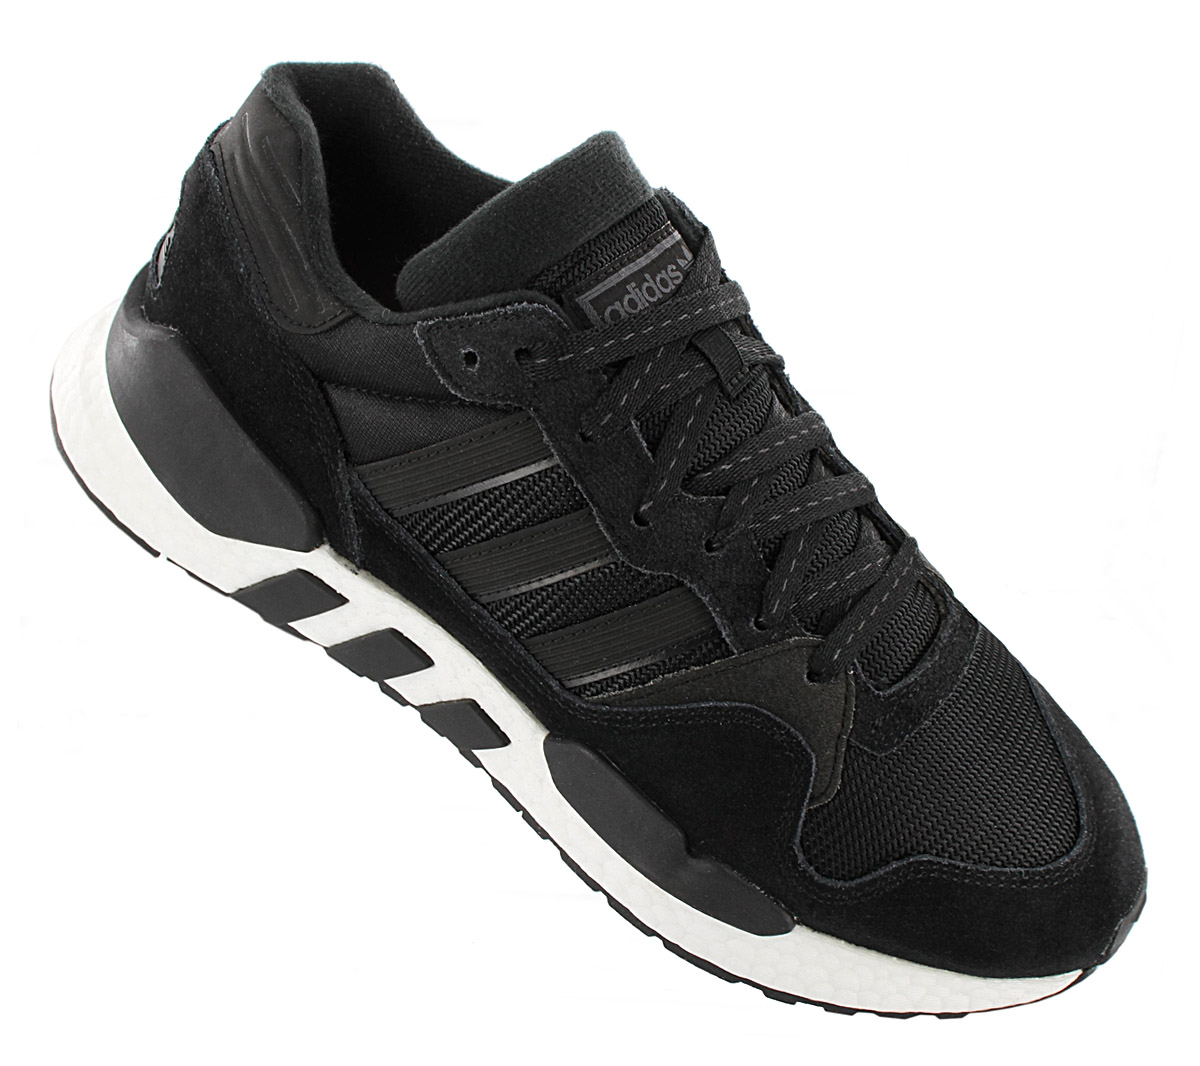 Adidas ZX EQT 9118 Details about 930 x Equipment fbY7ygvI6